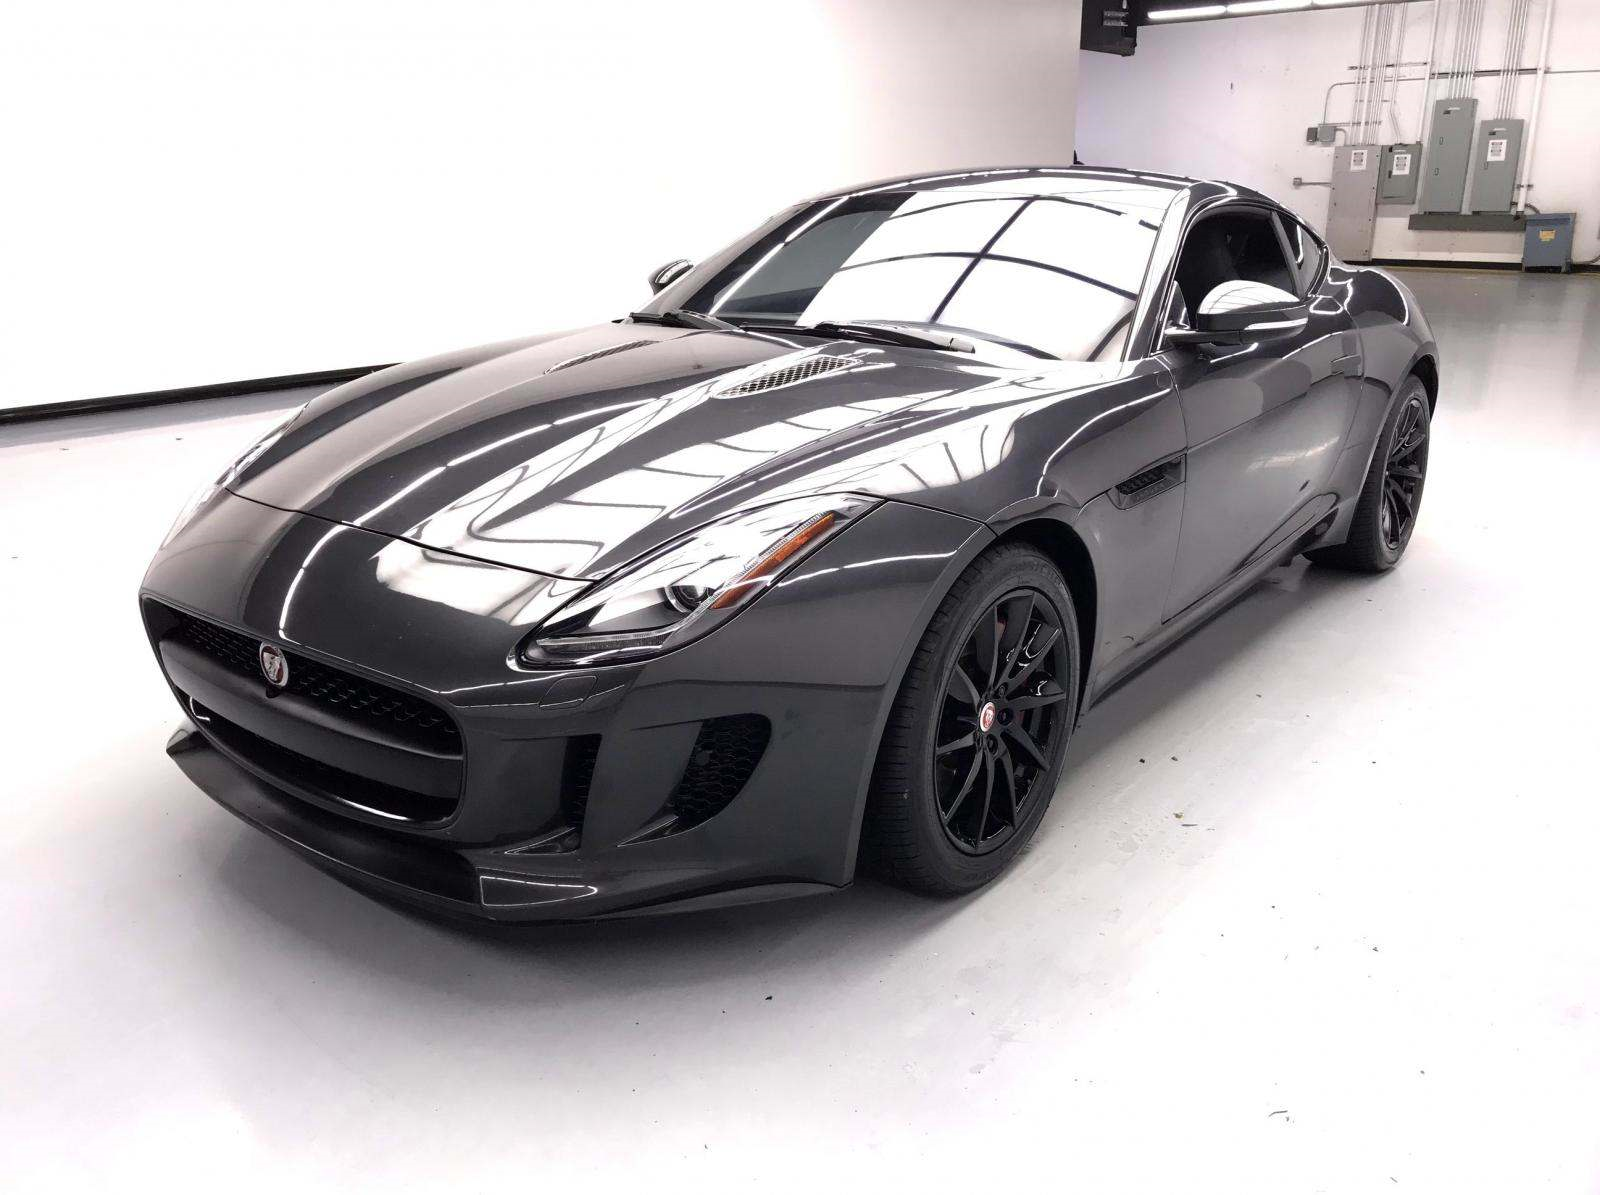 2017 Jaguar F-Type $38980.00 for sale in Stafford, TX ...